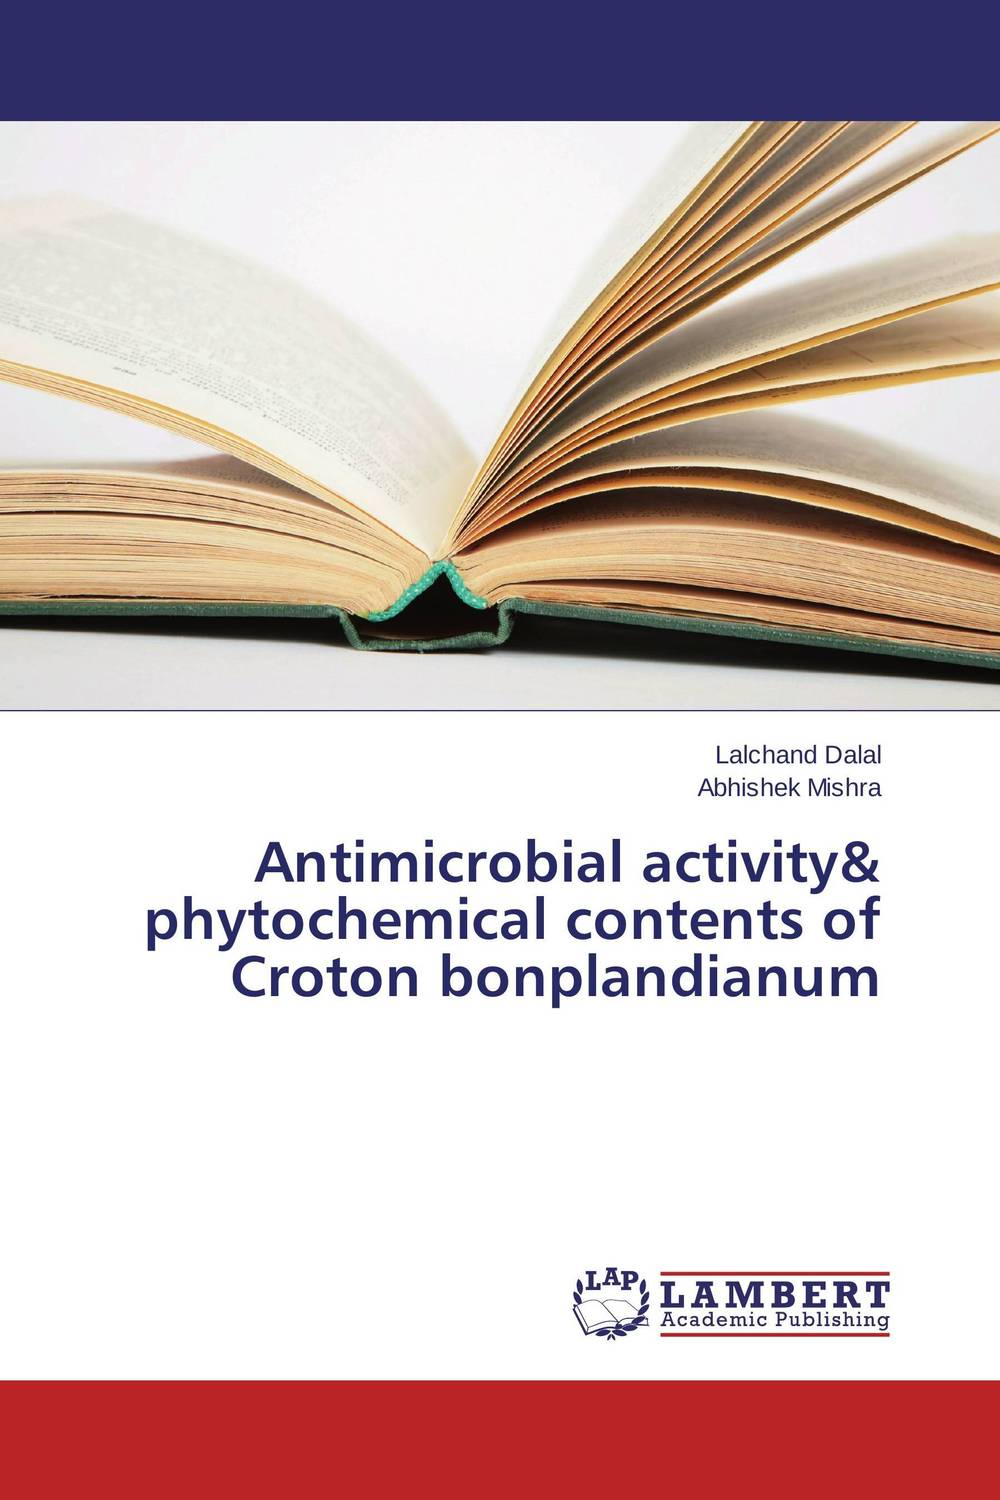 Antimicrobial activity& phytochemical contents of Croton bonplandianum environmental protection in india role of supreme court